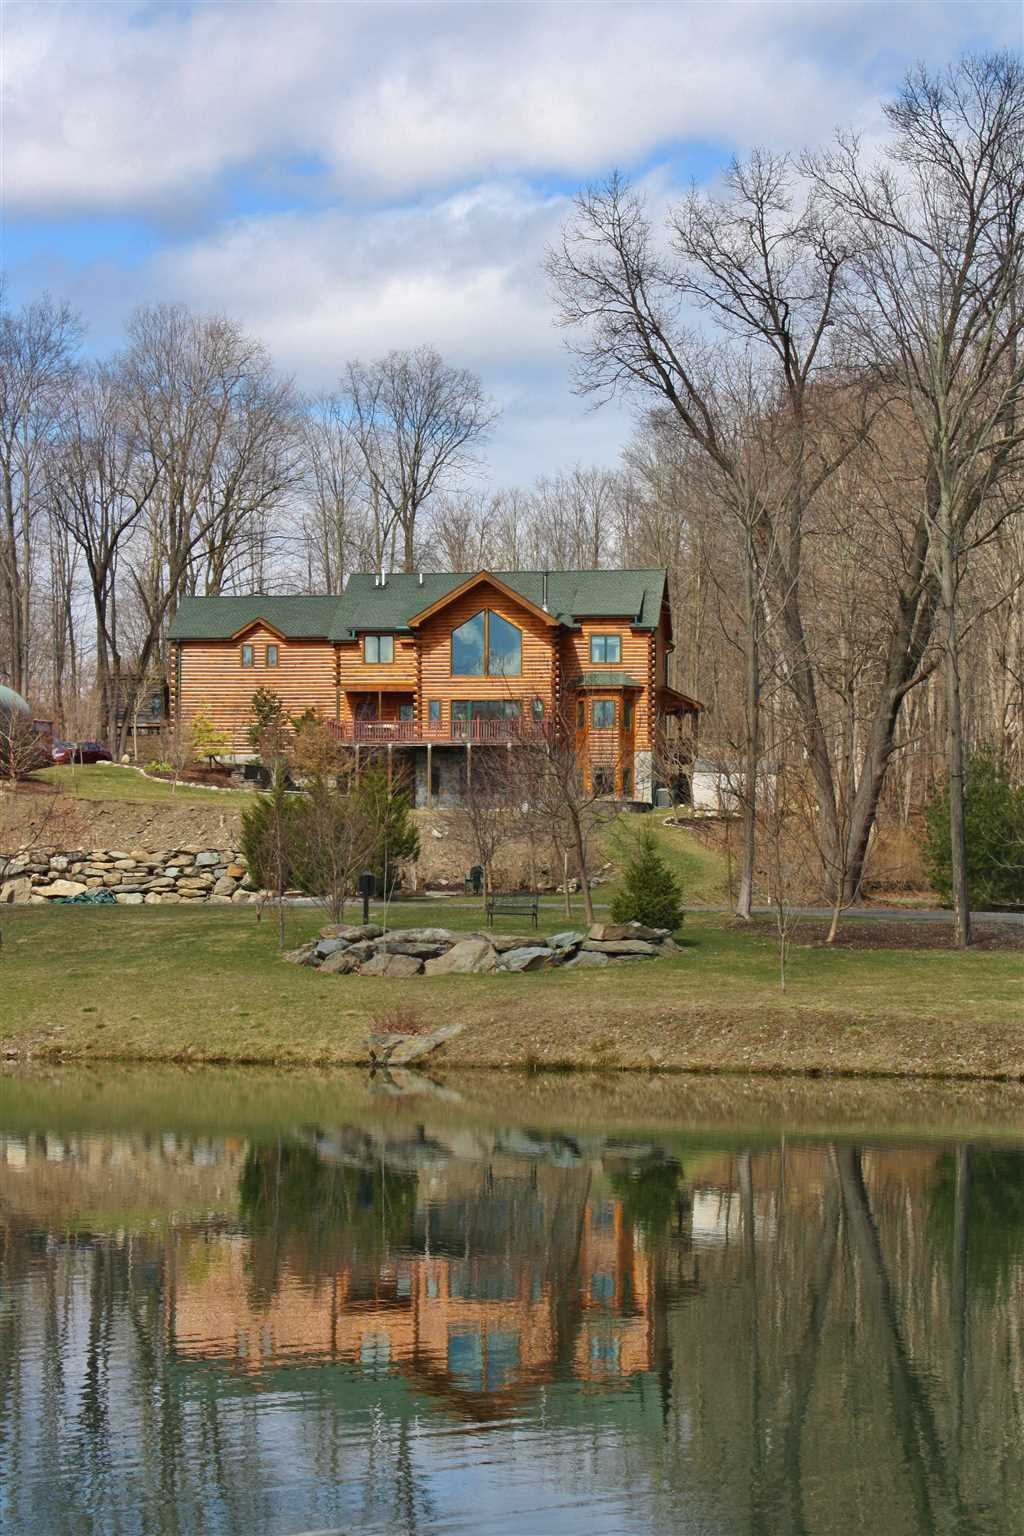 Additional photo for property listing at 162 CRUM ELBOW 162 CRUM ELBOW Hyde Park, New York 12538 United States